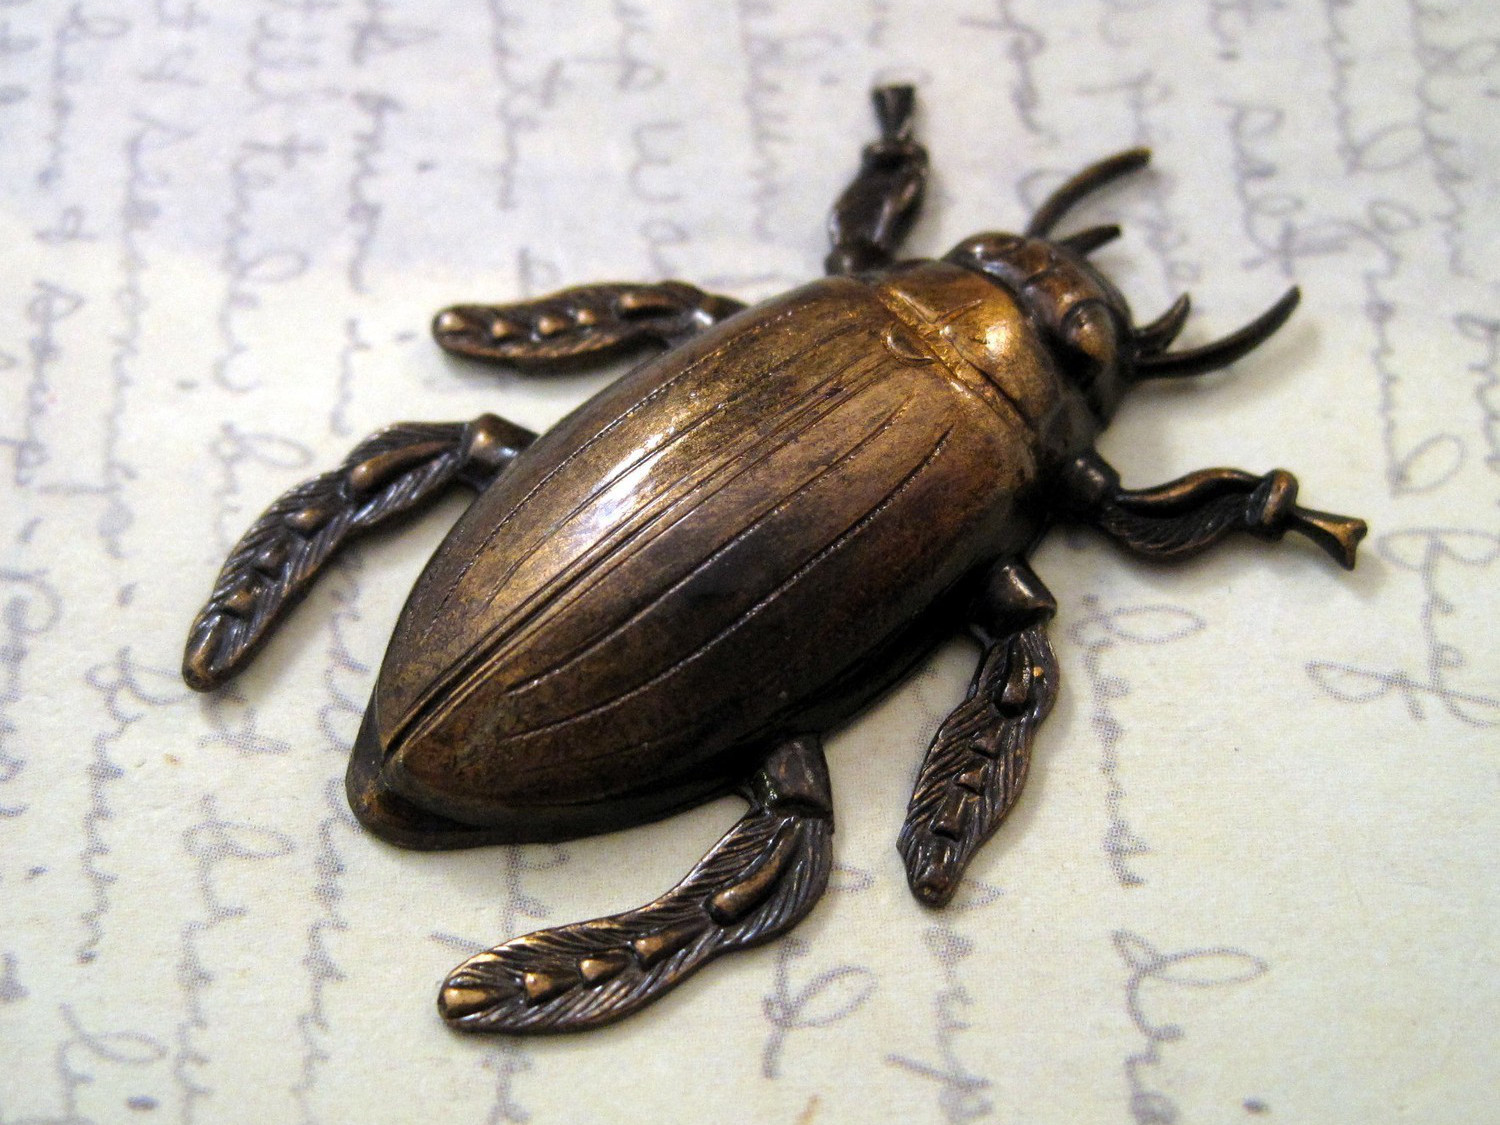 Brass Cockroach - Image Credit GlamourGirlBeads http://www.etsy.com/listing/62042780/large-antiqued-brass-cockroach1-ants3074